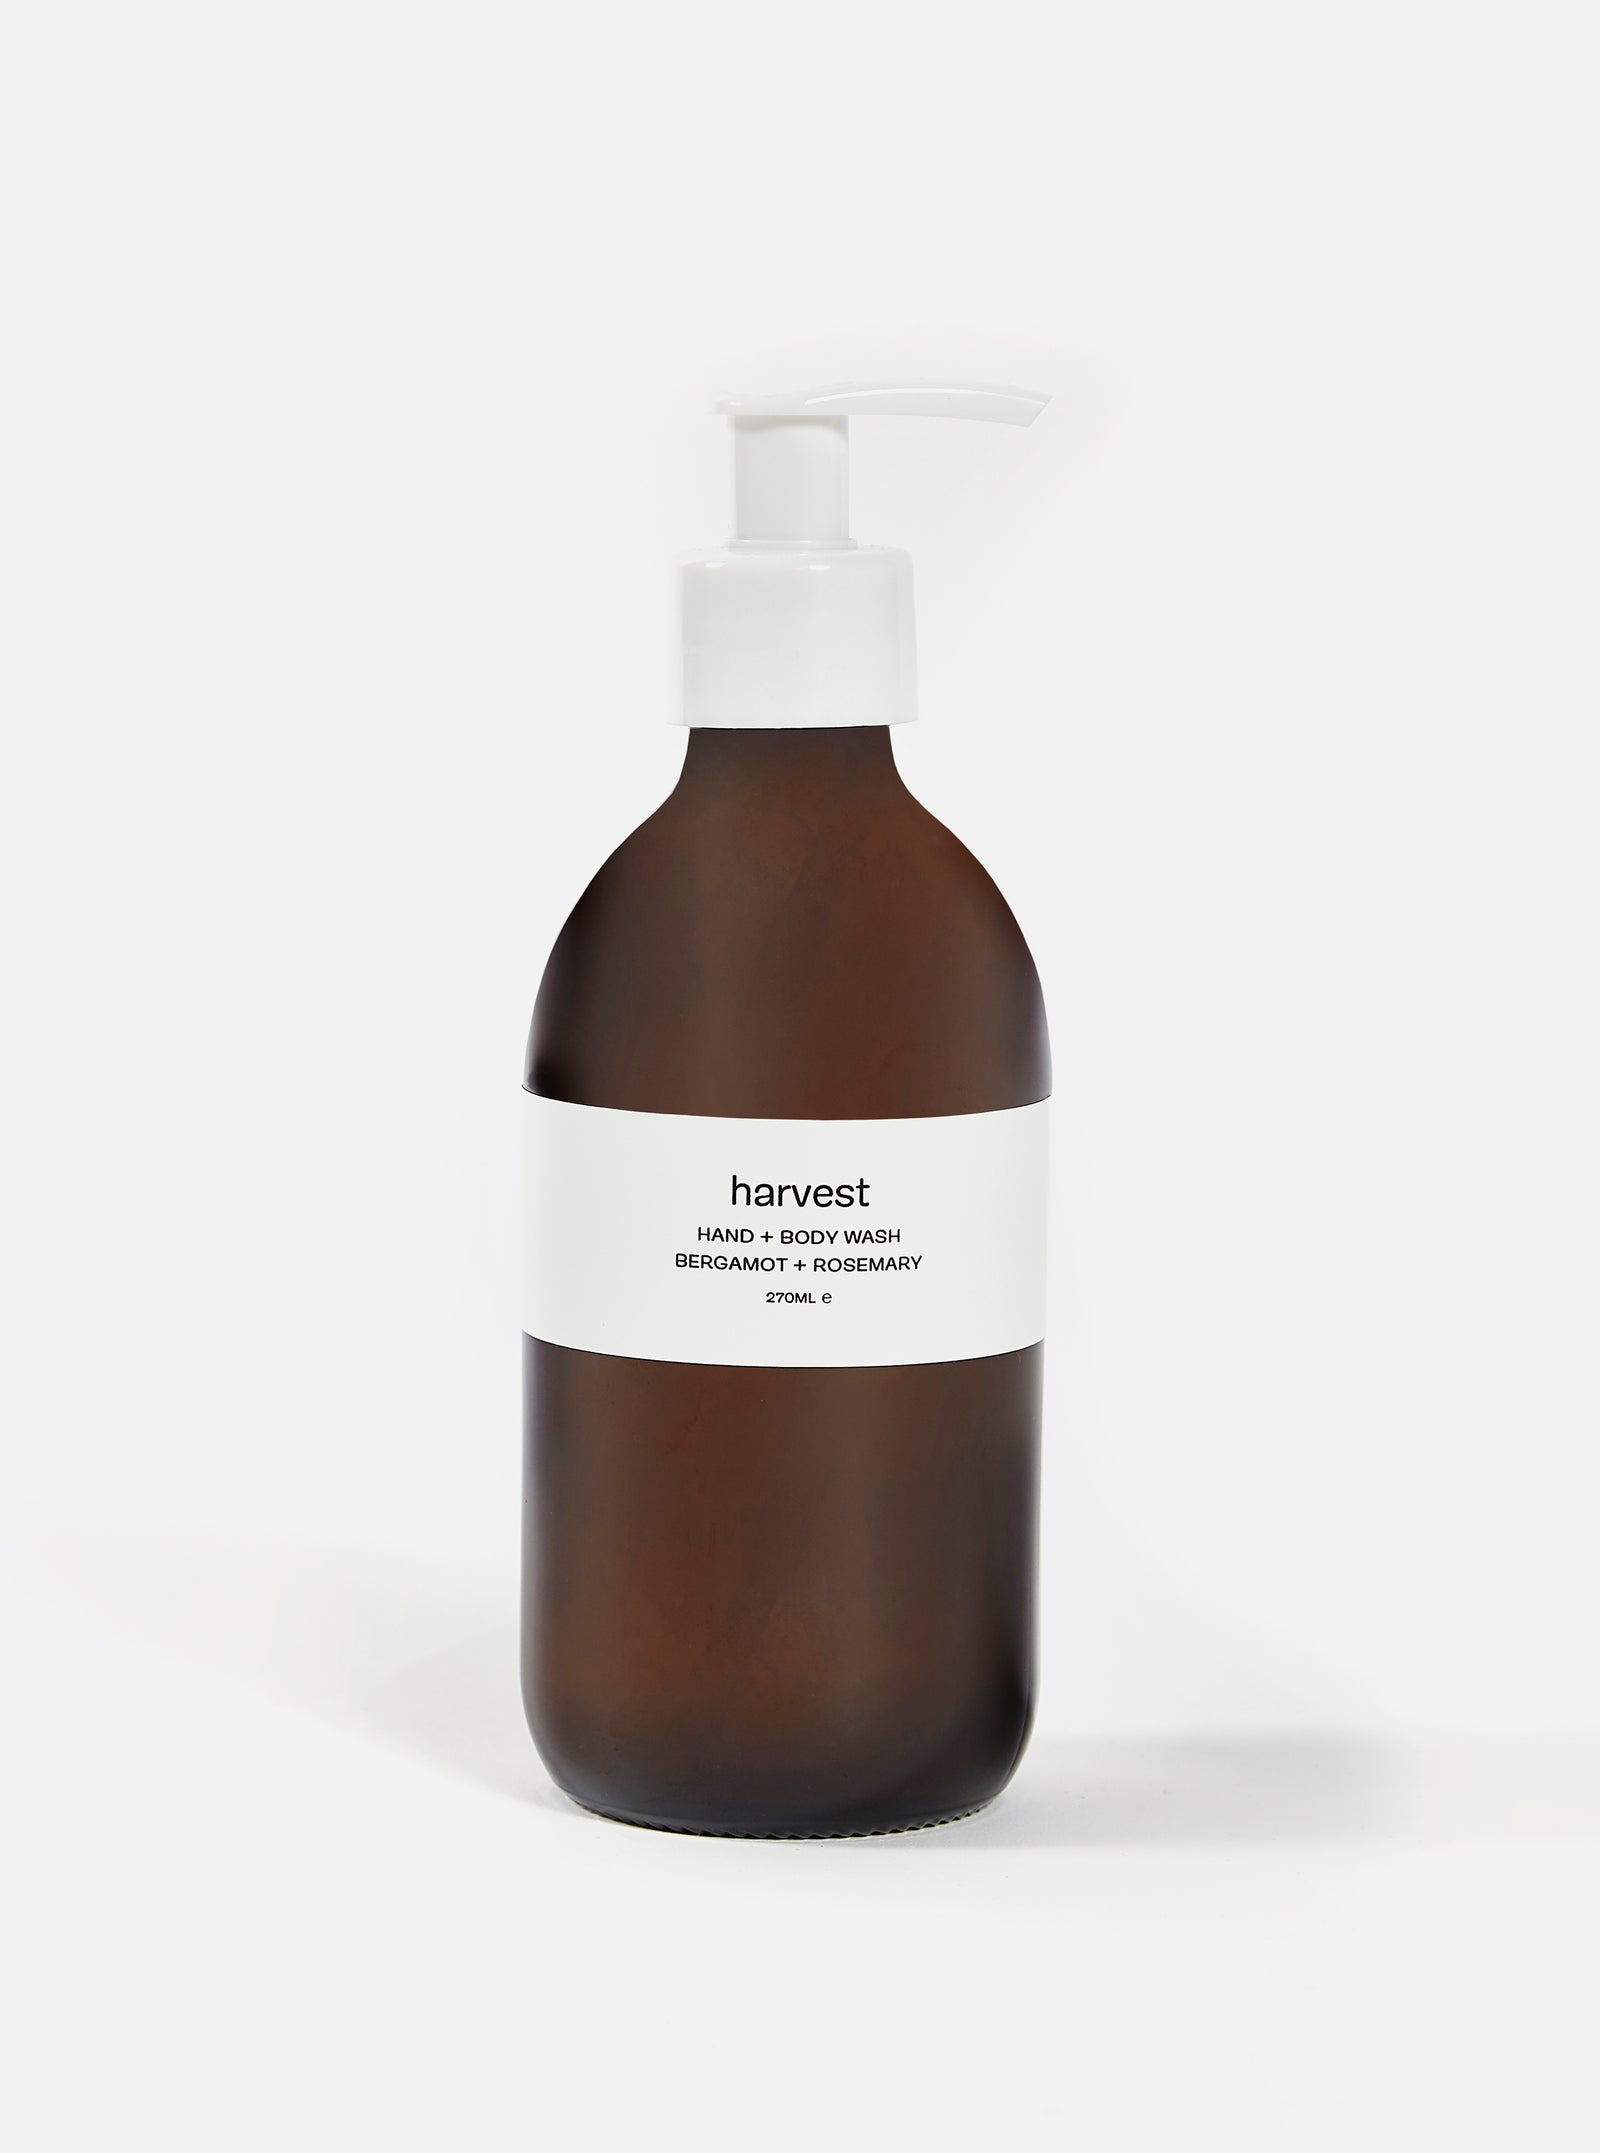 harvest 'Bergamot + Rosemary' hand and body wash - 270ml.